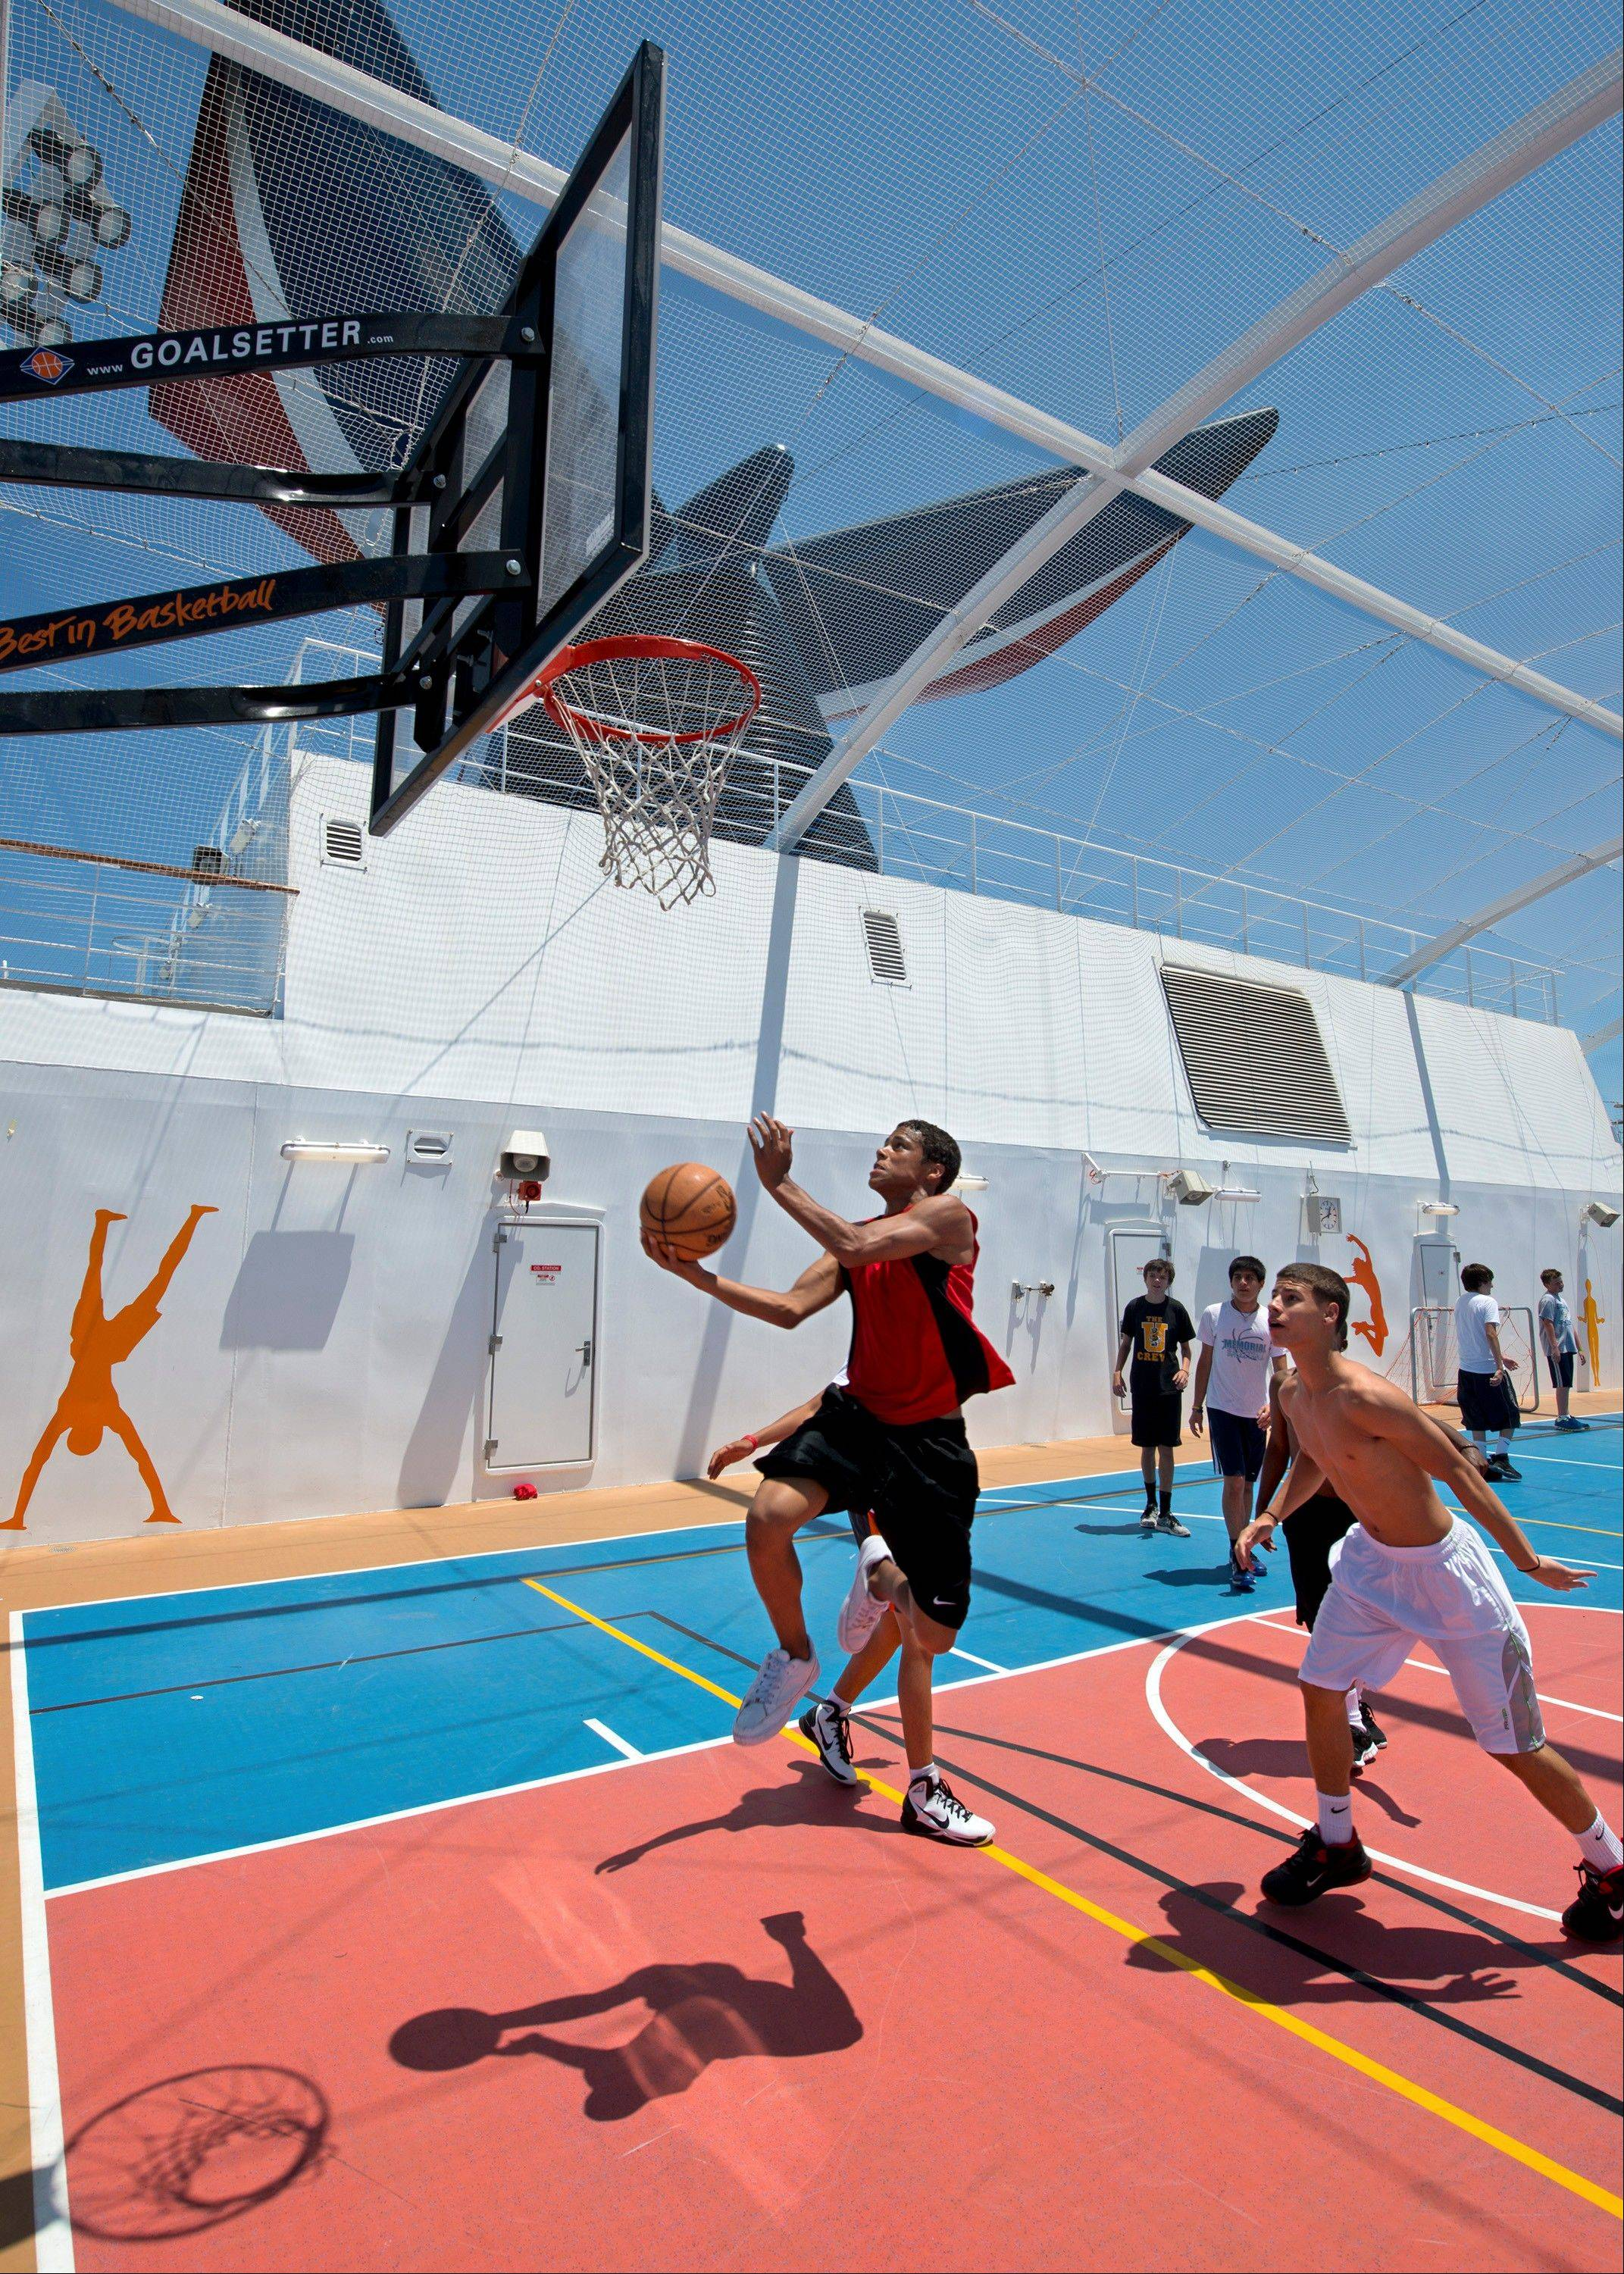 Teens on the Carnival Breeze play basketball in the ship's expansive SportSquare, an open-air recreation complex that also features a suspended ropes course, mini-golf, jogging track, ping-pong, pool, and foosball tables.